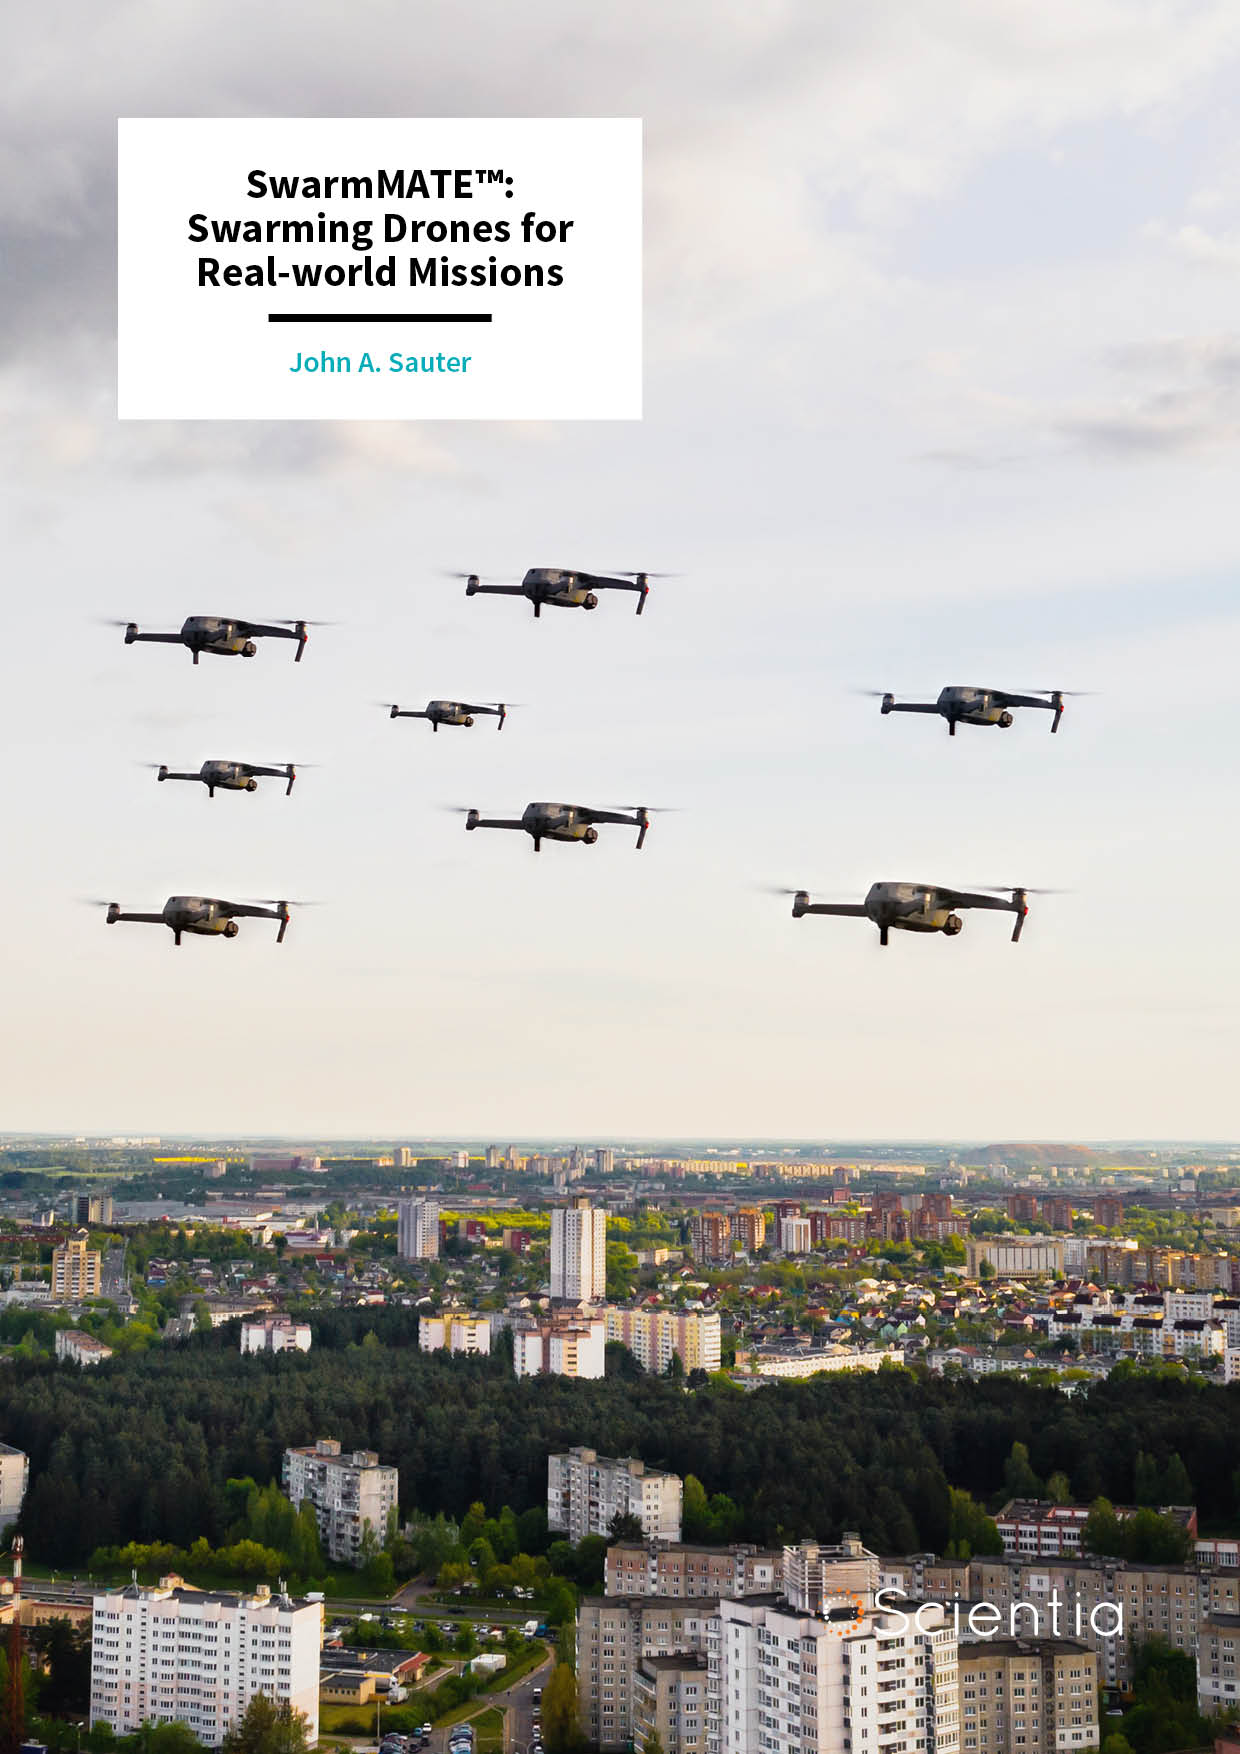 SwarmMATE™: Swarming Drones for Real-world Missions